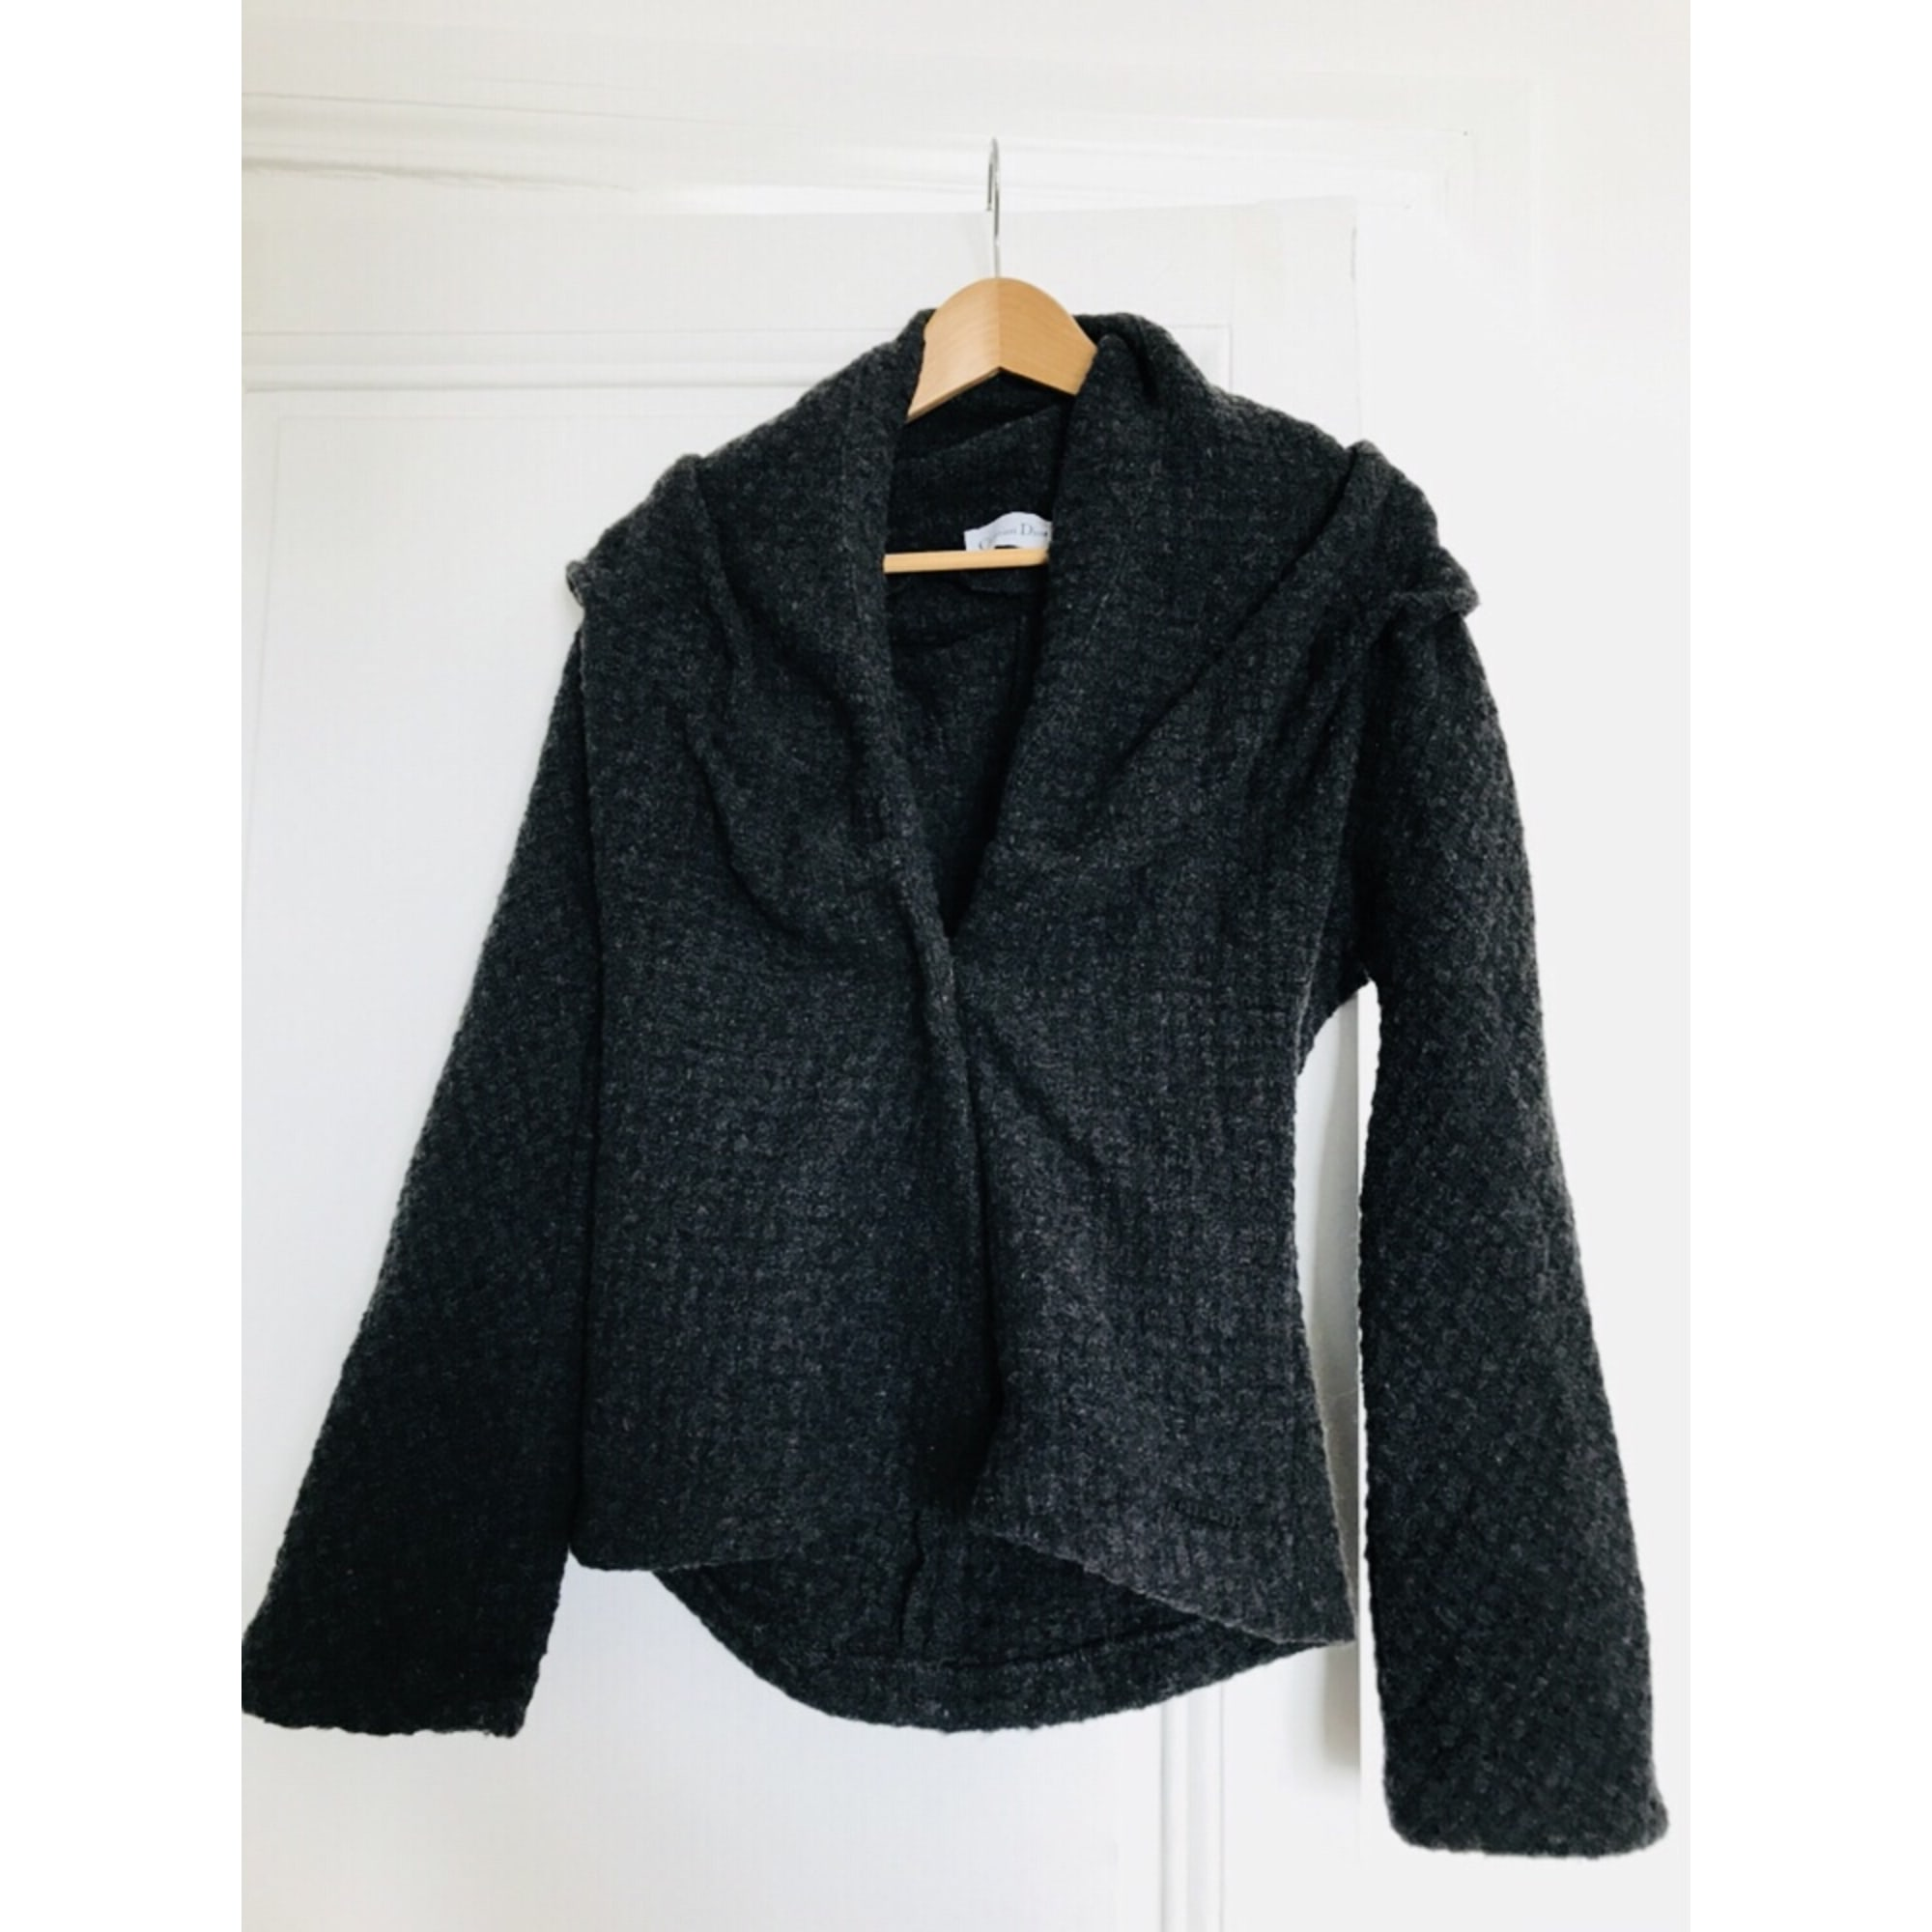 Gilet, cardigan BABY DIOR Gris, anthracite